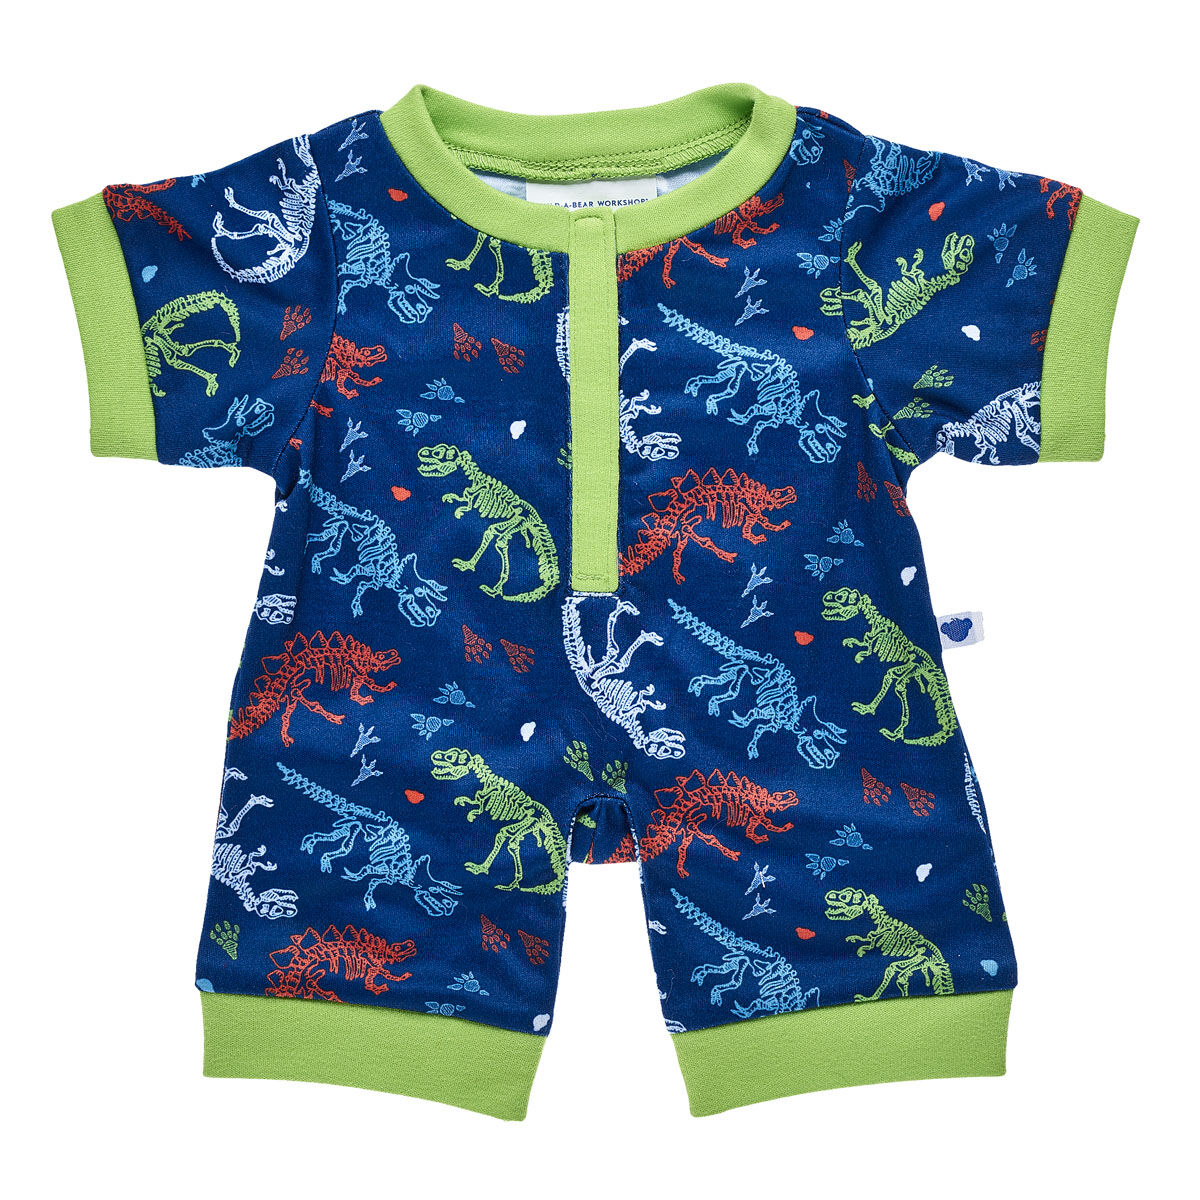 image about Free Printable Build a Bear Clothes Patterns identify Gown Me Filled Animal Dresses Footwear Produce-A-Bear®